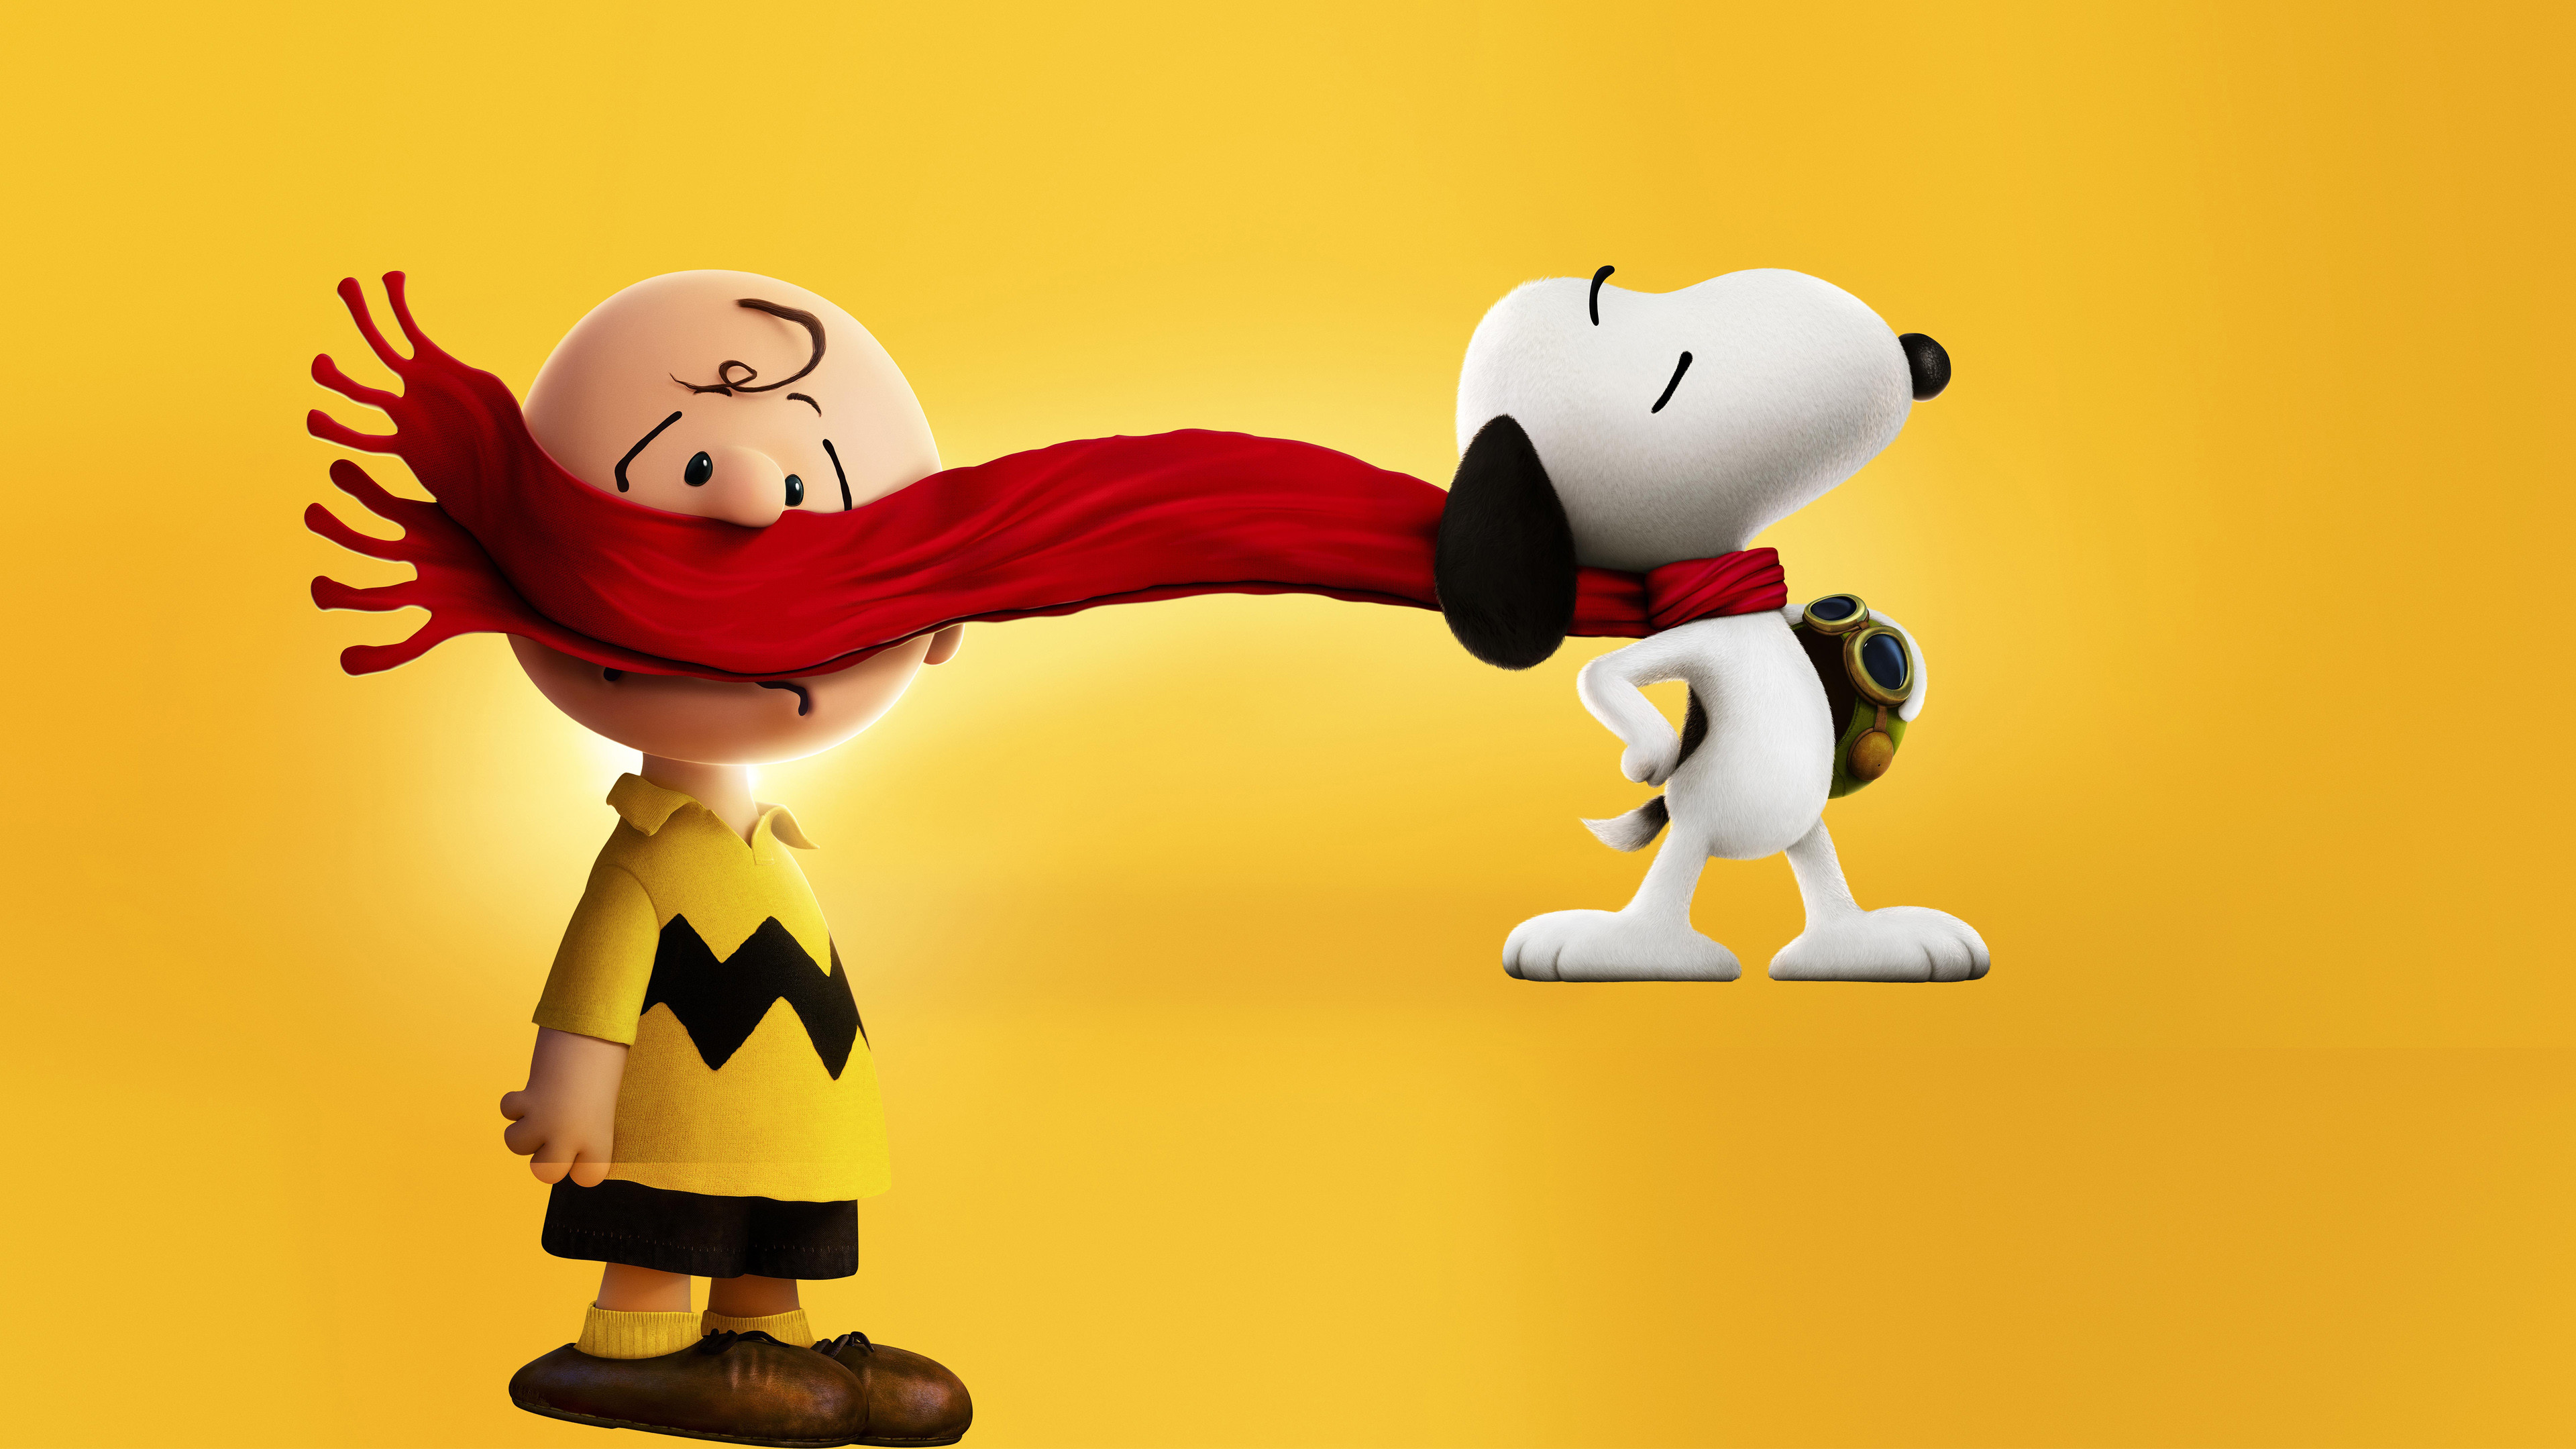 Res: 3840x2160, Snoopy Full HD Wallpaper and Background | 2560x1920 | ID:461597